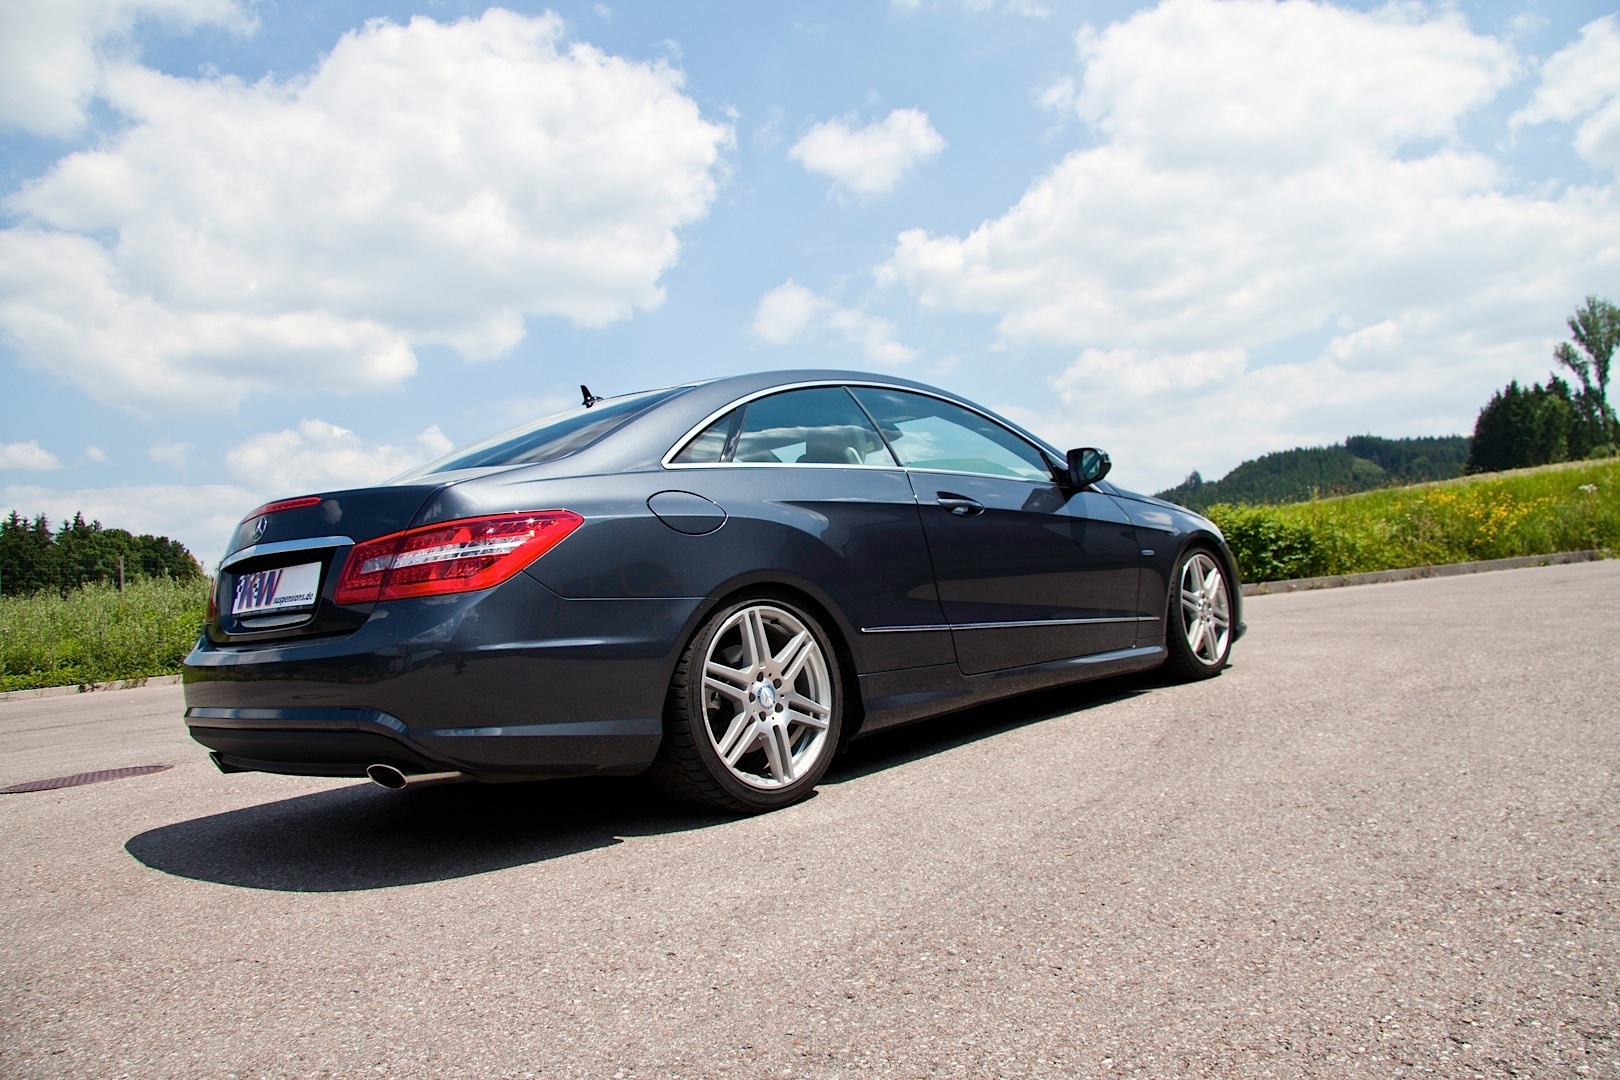 Kw Launches Adaptive Coilover Kit For C Class And E Class Coupe Autoevolution